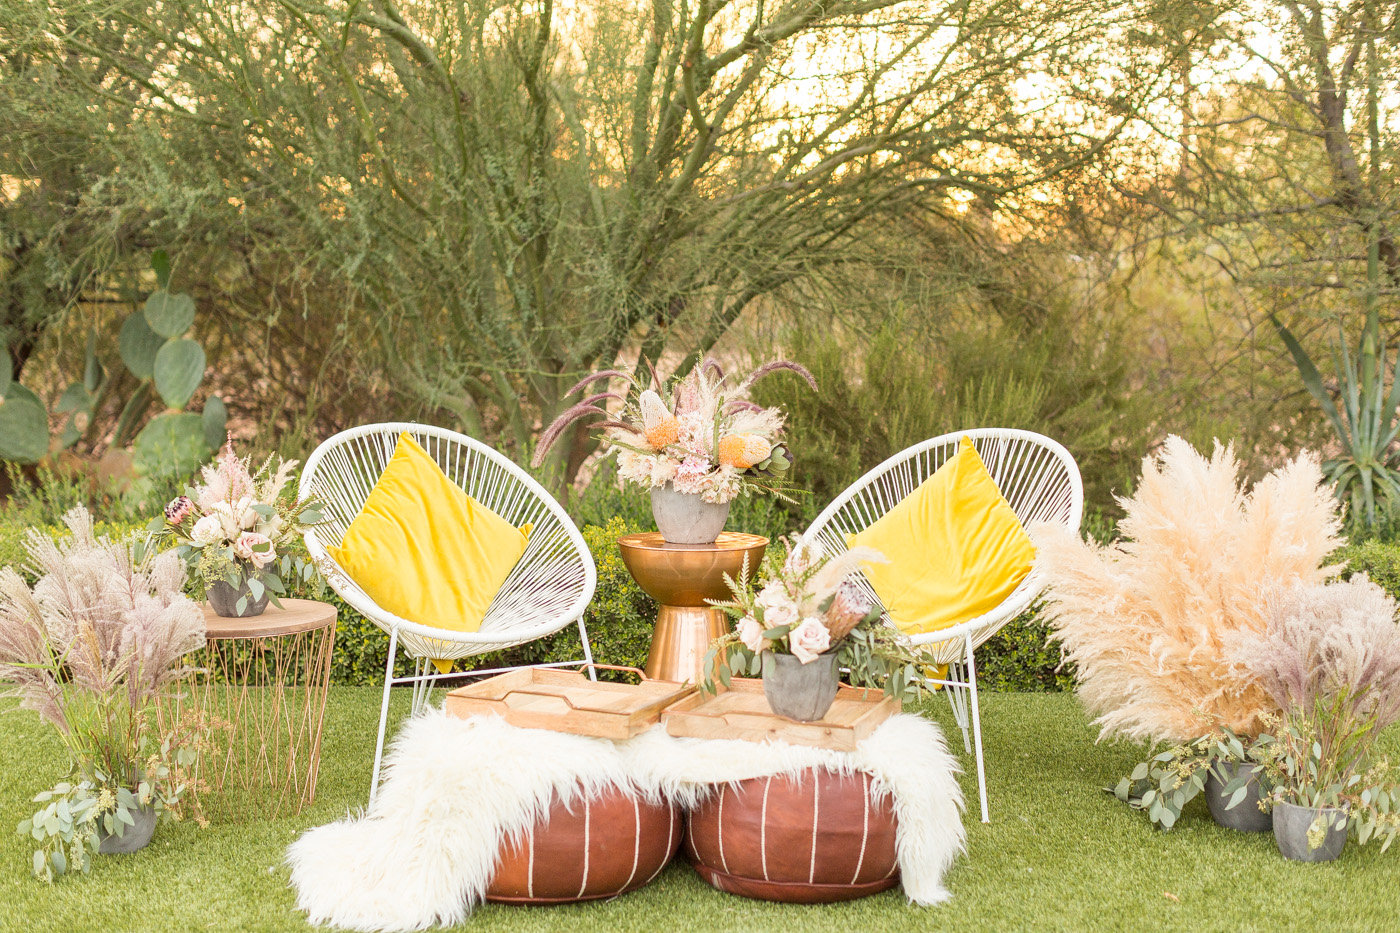 wedding lounge area - photo by Karlee K Photography http://ruffledblog.com/cheerful-desert-wedding-inspiration-with-bright-yellow